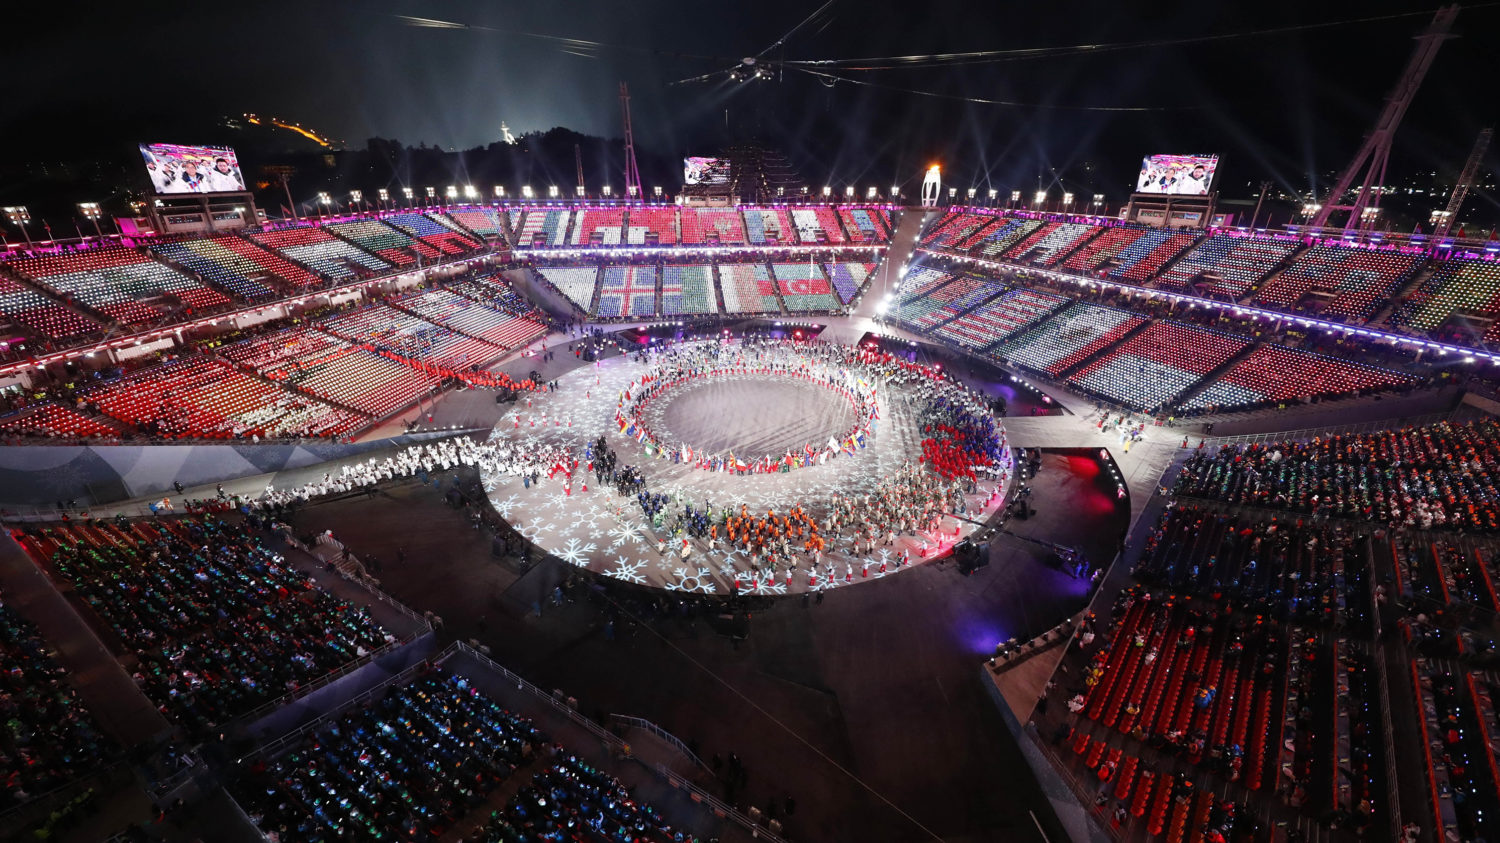 Pyeongchang Olympics: Closing Ceremony Ends Biggest Winter